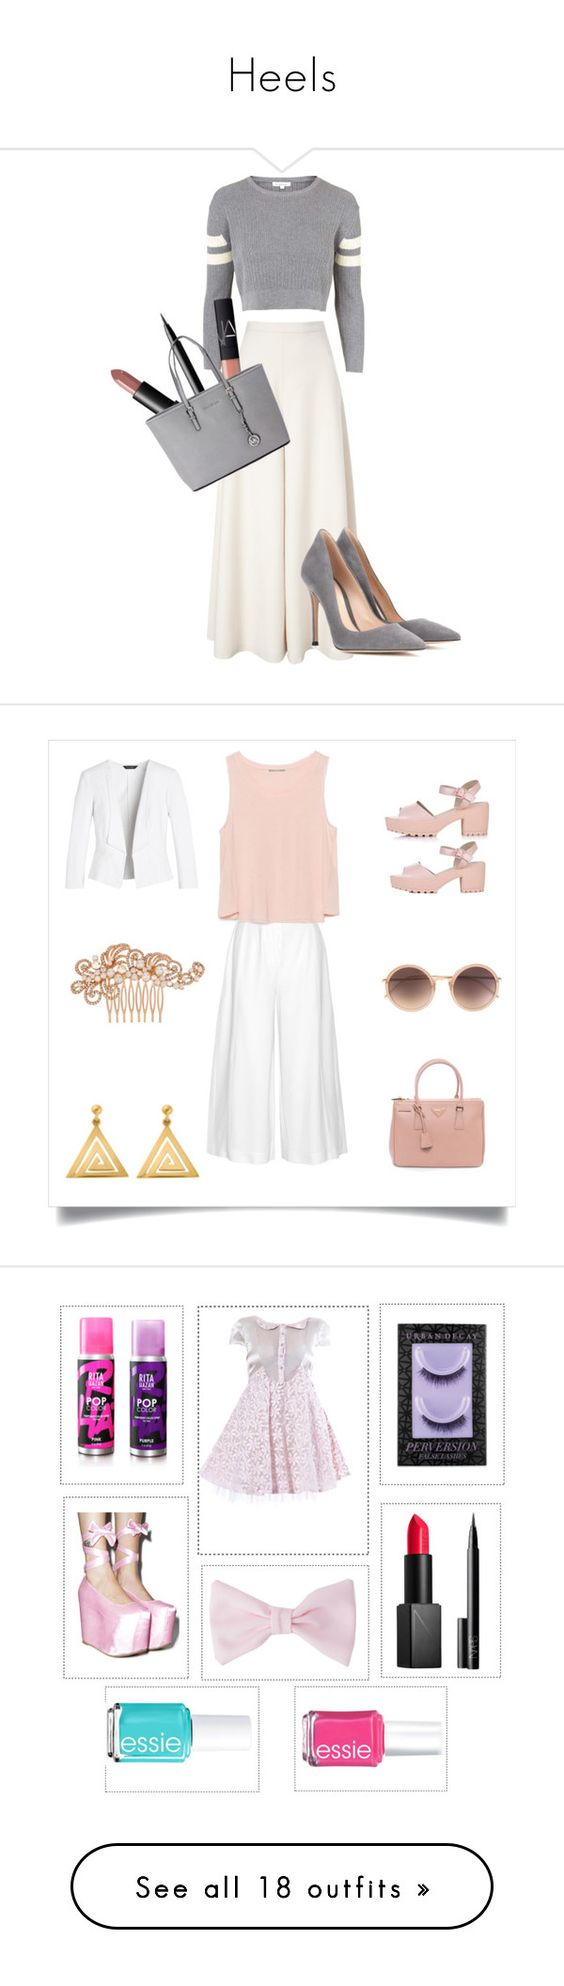 """""""Heels"""" by brooklynbeauty18 ❤ liked on Polyvore featuring Topshop, Temperley London, Gianvito Rossi, NARS Cosmetics, Michael Kors, cream, grey, culottes, Quckie and Proenza Schouler"""